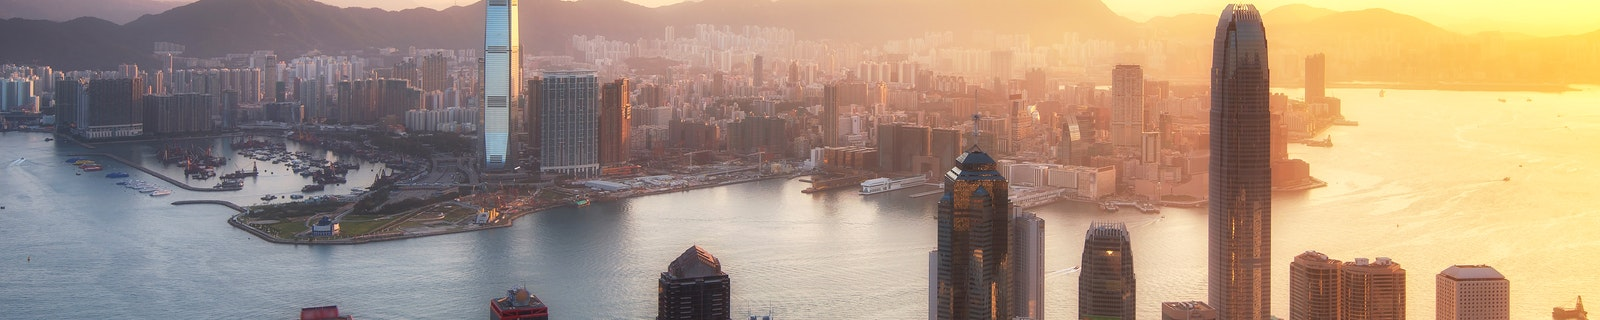 Cityscape of Hong Kong City